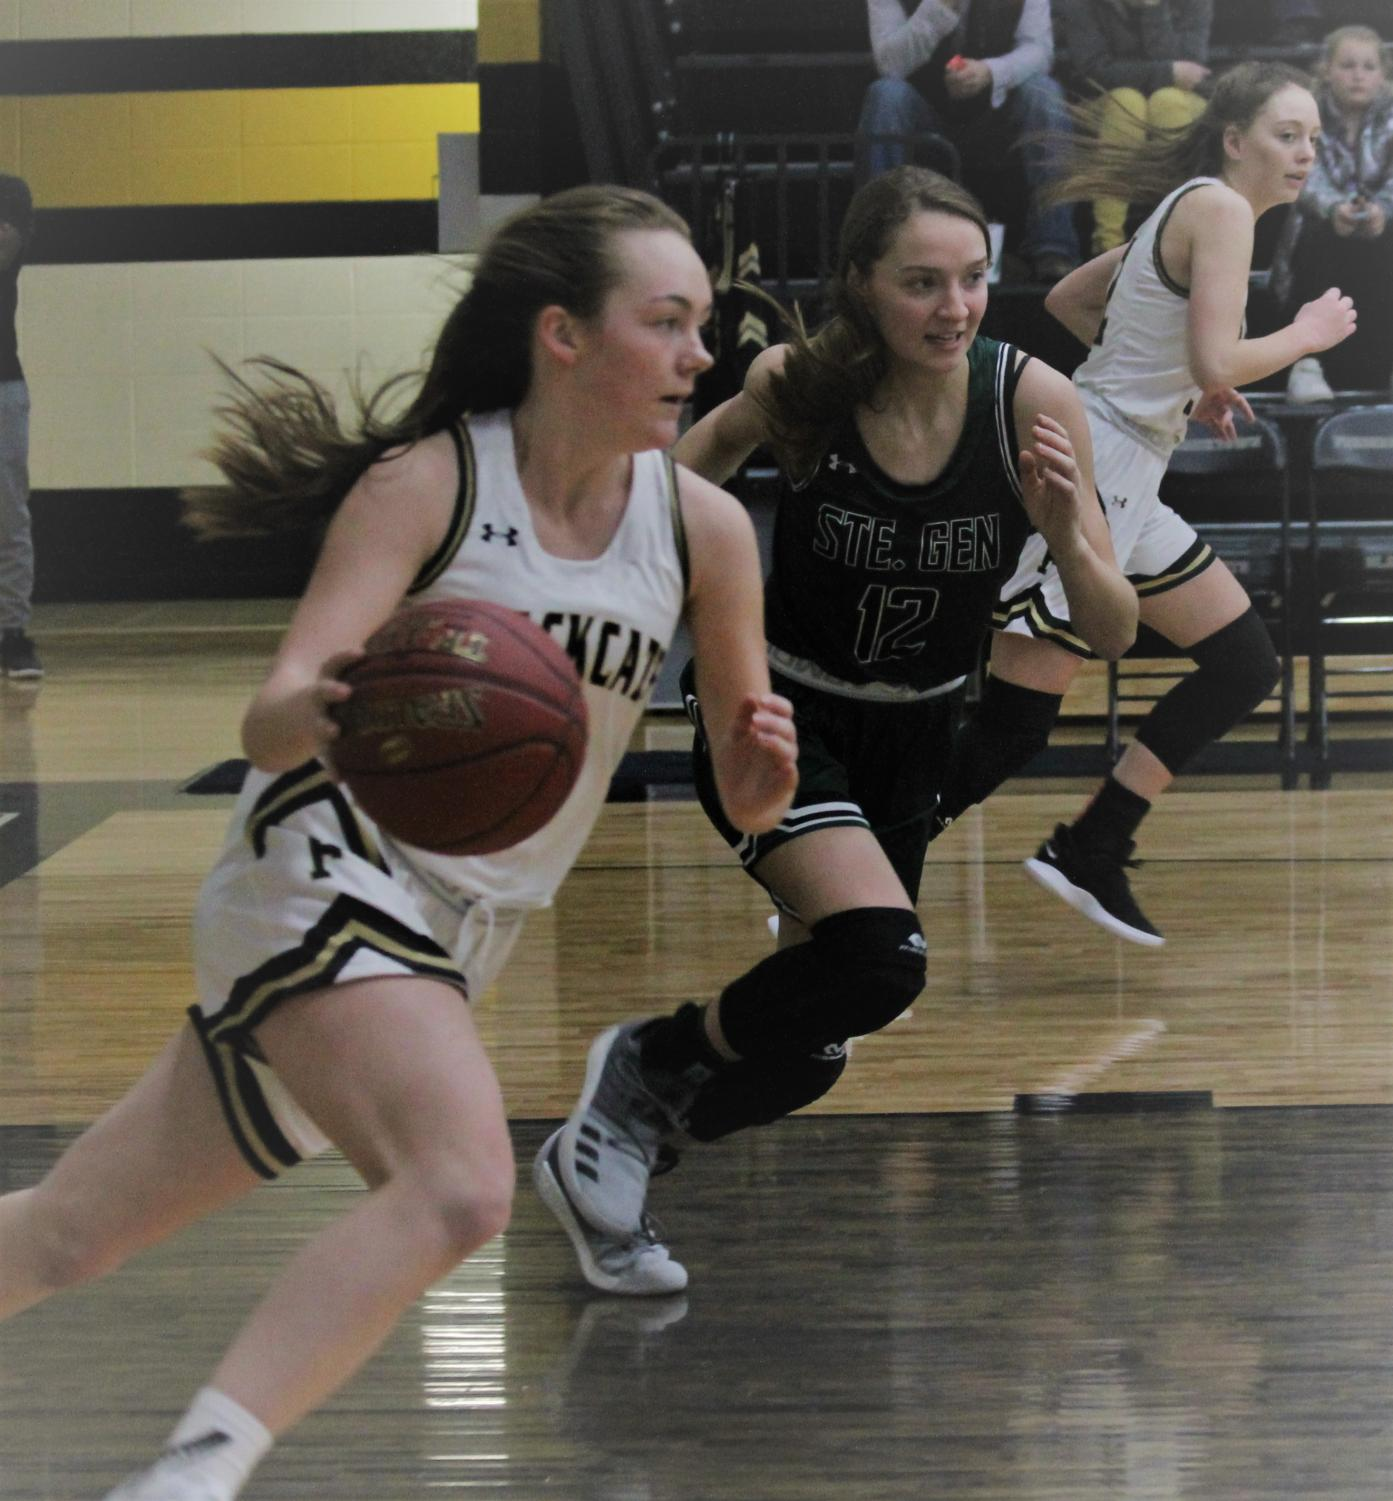 Mallory Mathes, Junior dribbles the ball to the other side of the court after a rebound.  Senior Maddie Burrows remains ready to receive a pass.